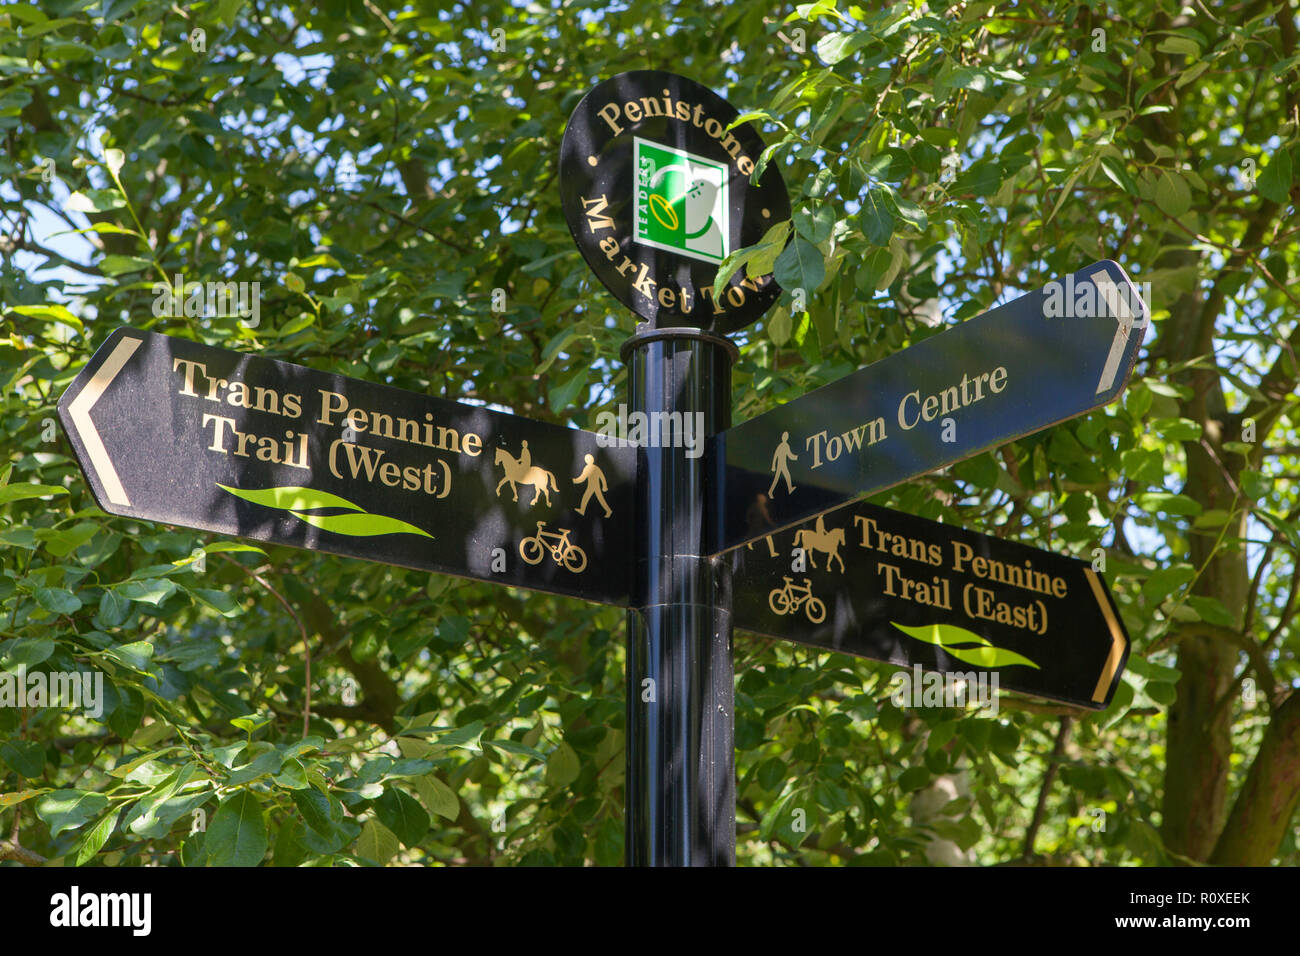 direction indicator sign for the Trans Pennine Trail (a long distance footpath and bridleway) in Penistone, South Yorkshire - Stock Image